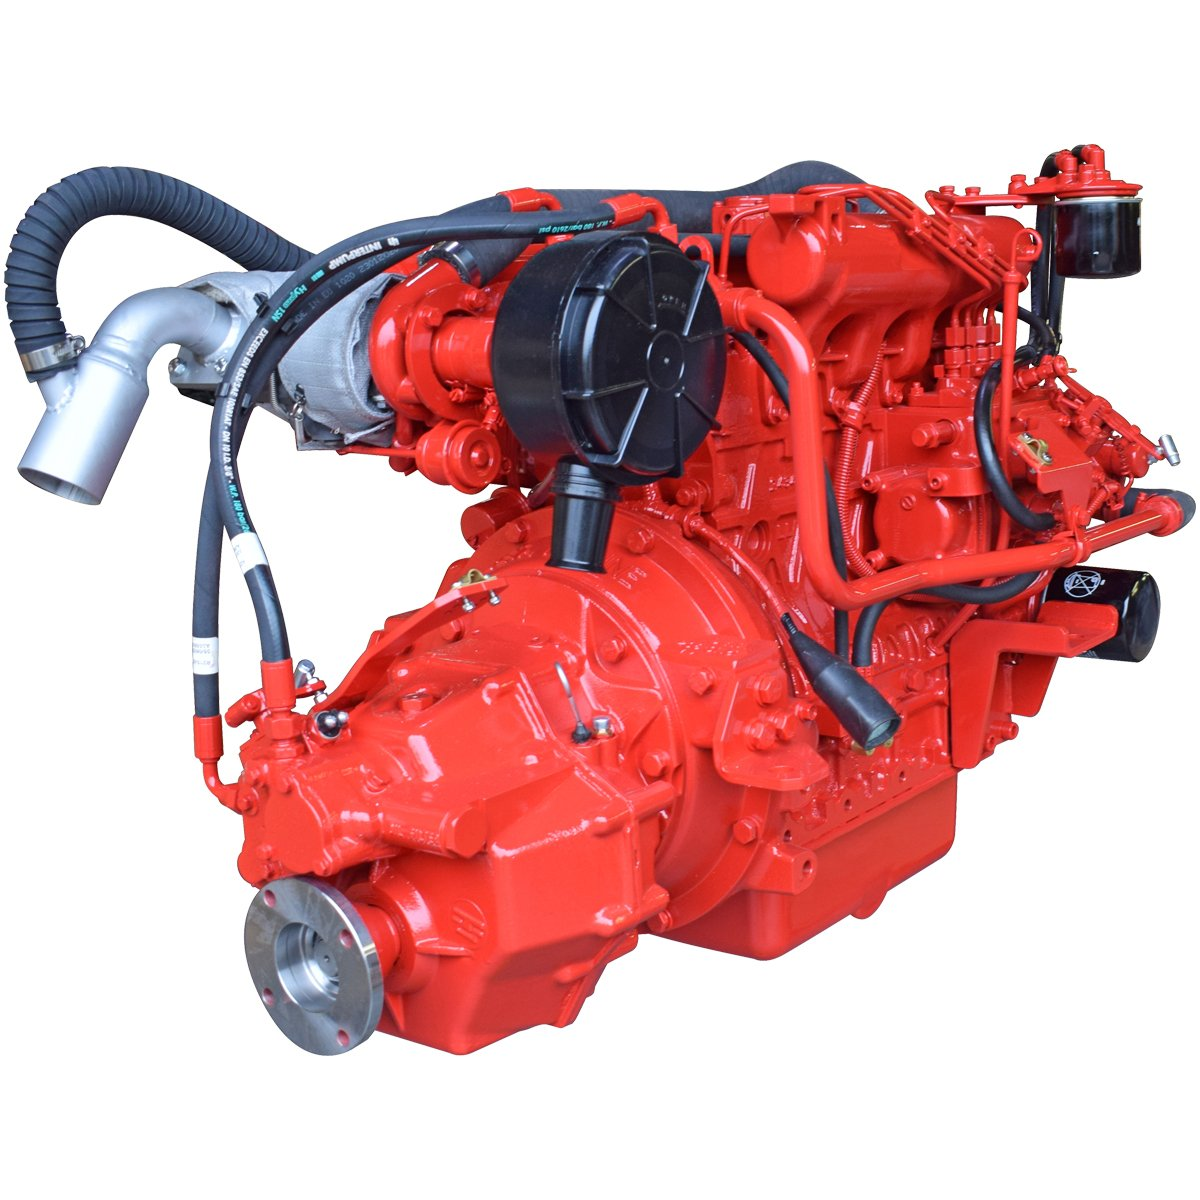 Beta Marine USA - marine diesel propulsion engines - Beta 62T heat exchanger engine